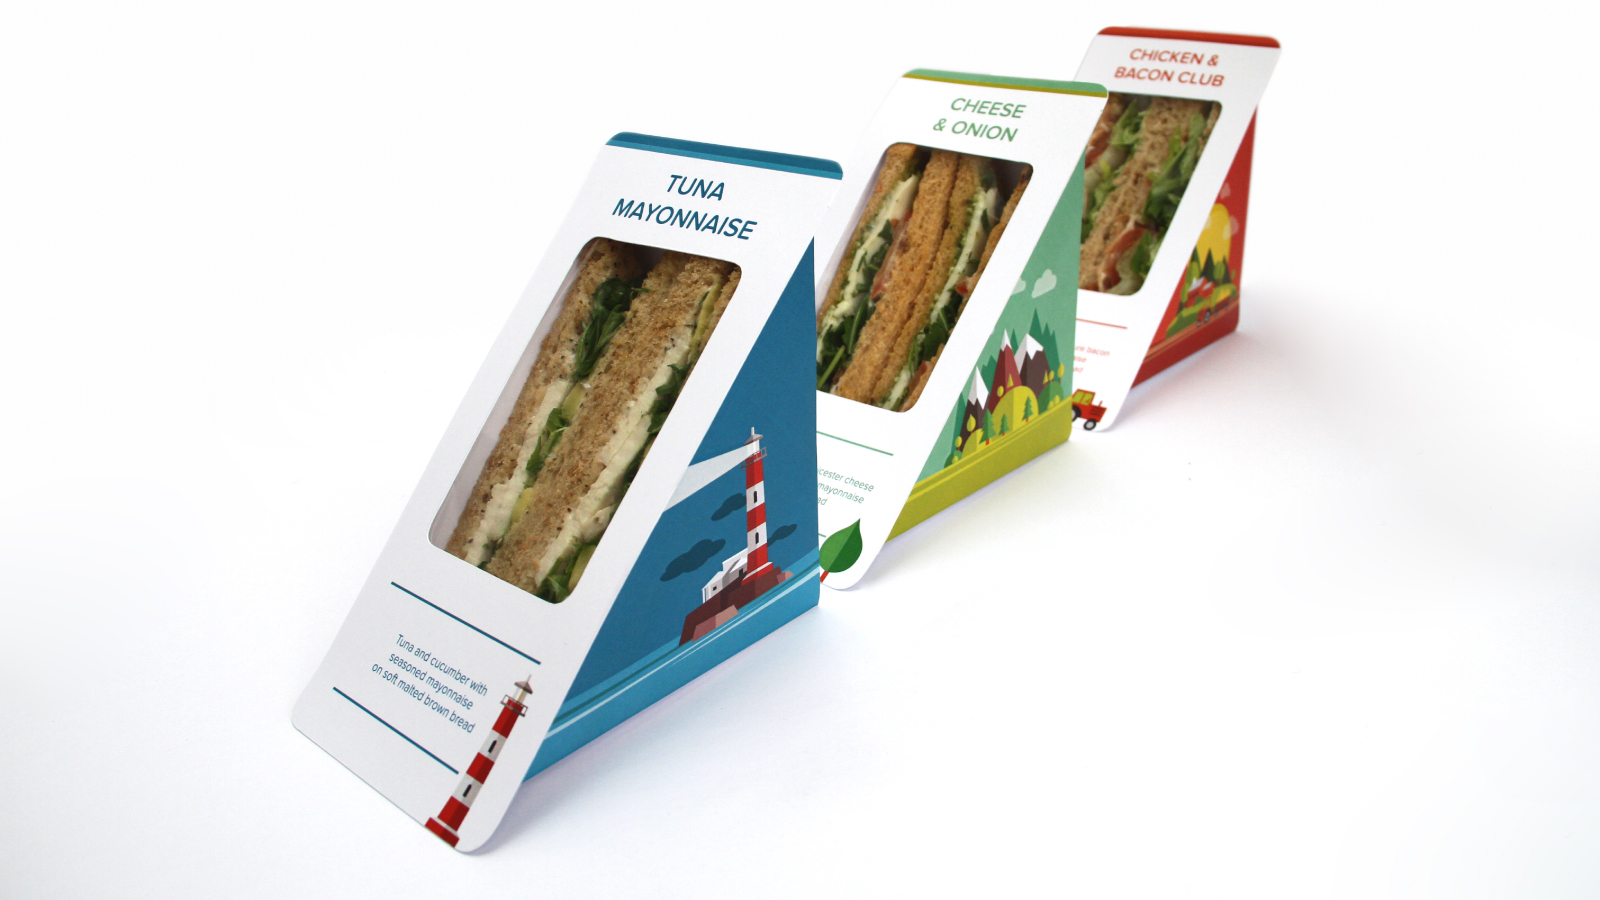 Creative sandwich pack designs with stand out illustrations